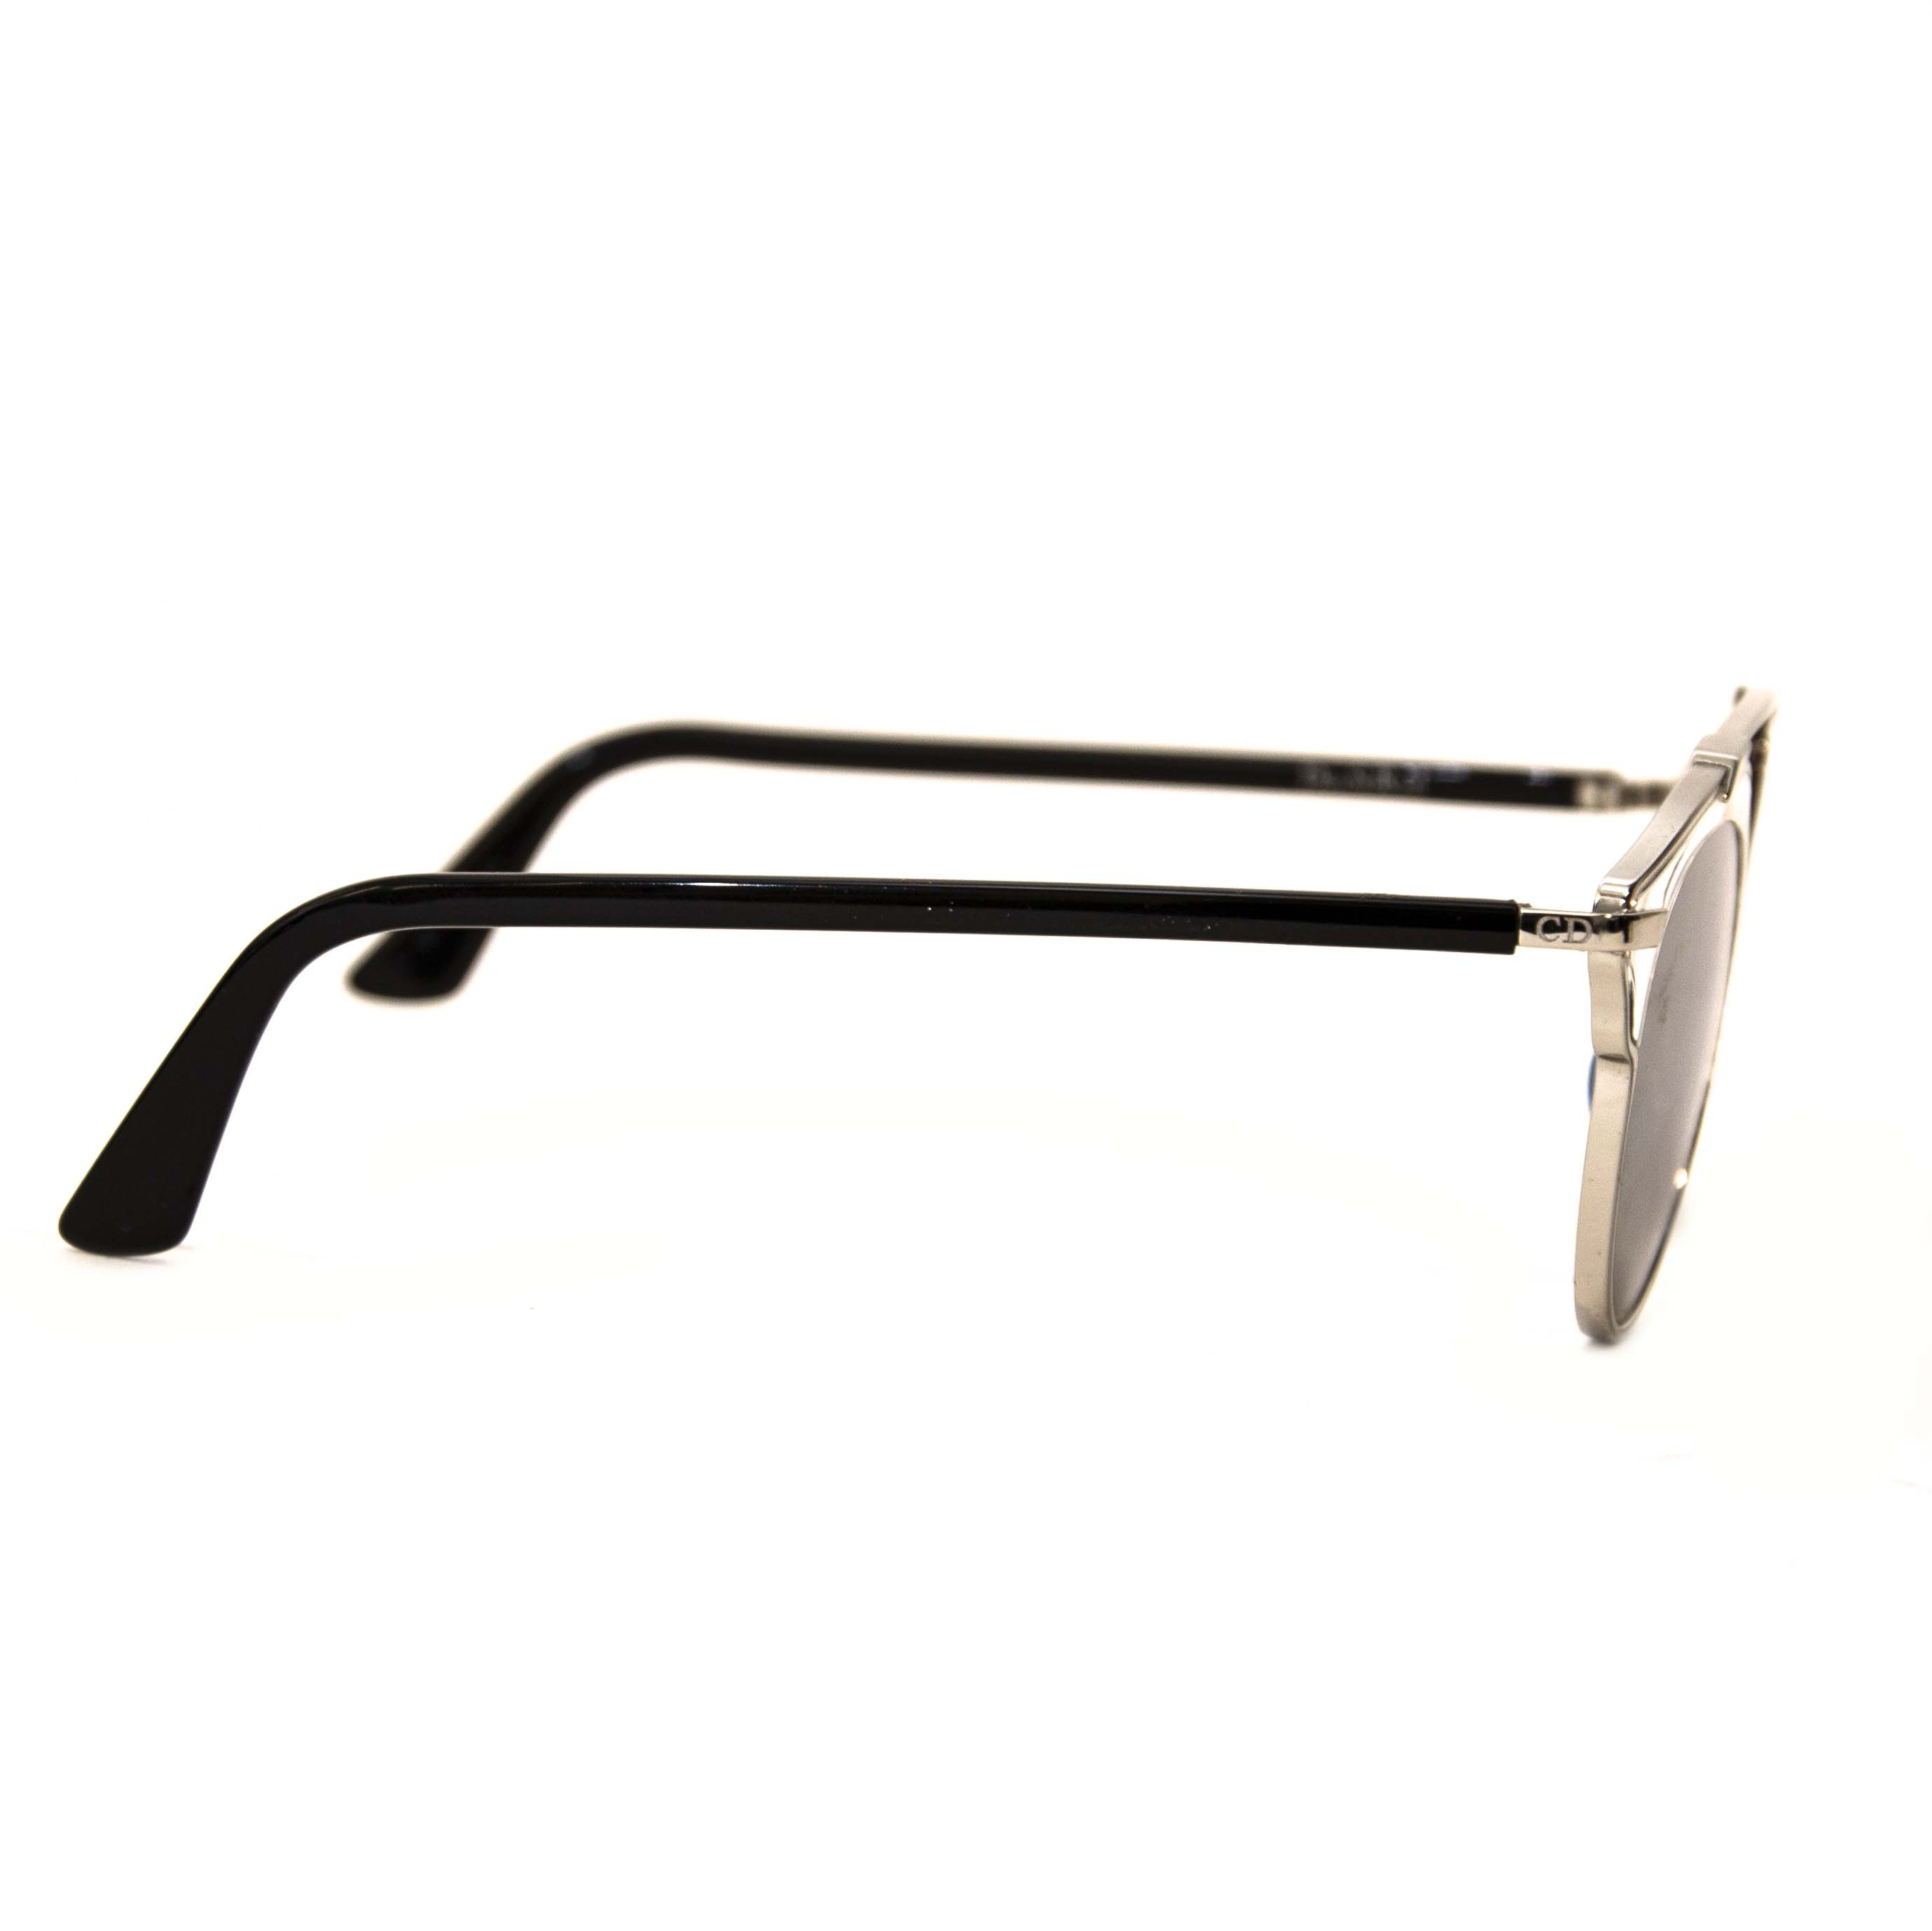 Authentique seconde main vintage Dior Soreal Sunglasses Silver achète en ligne webshop LabelLOV